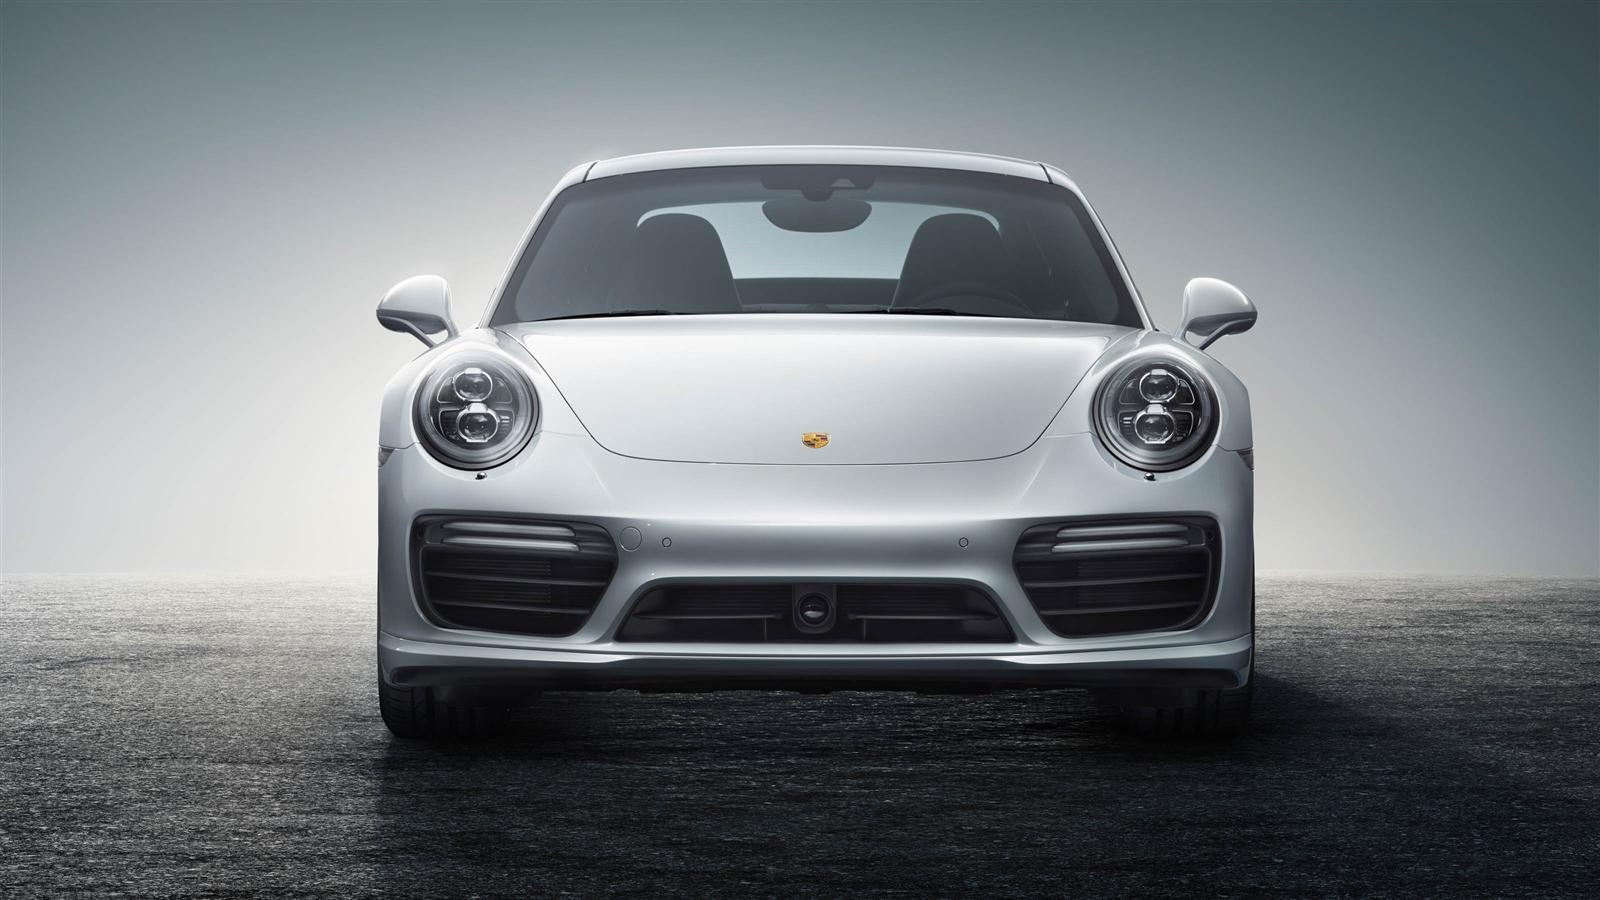 PORSCHE 911 Turbo S 9912 Specs Amp Photos 2016 2017